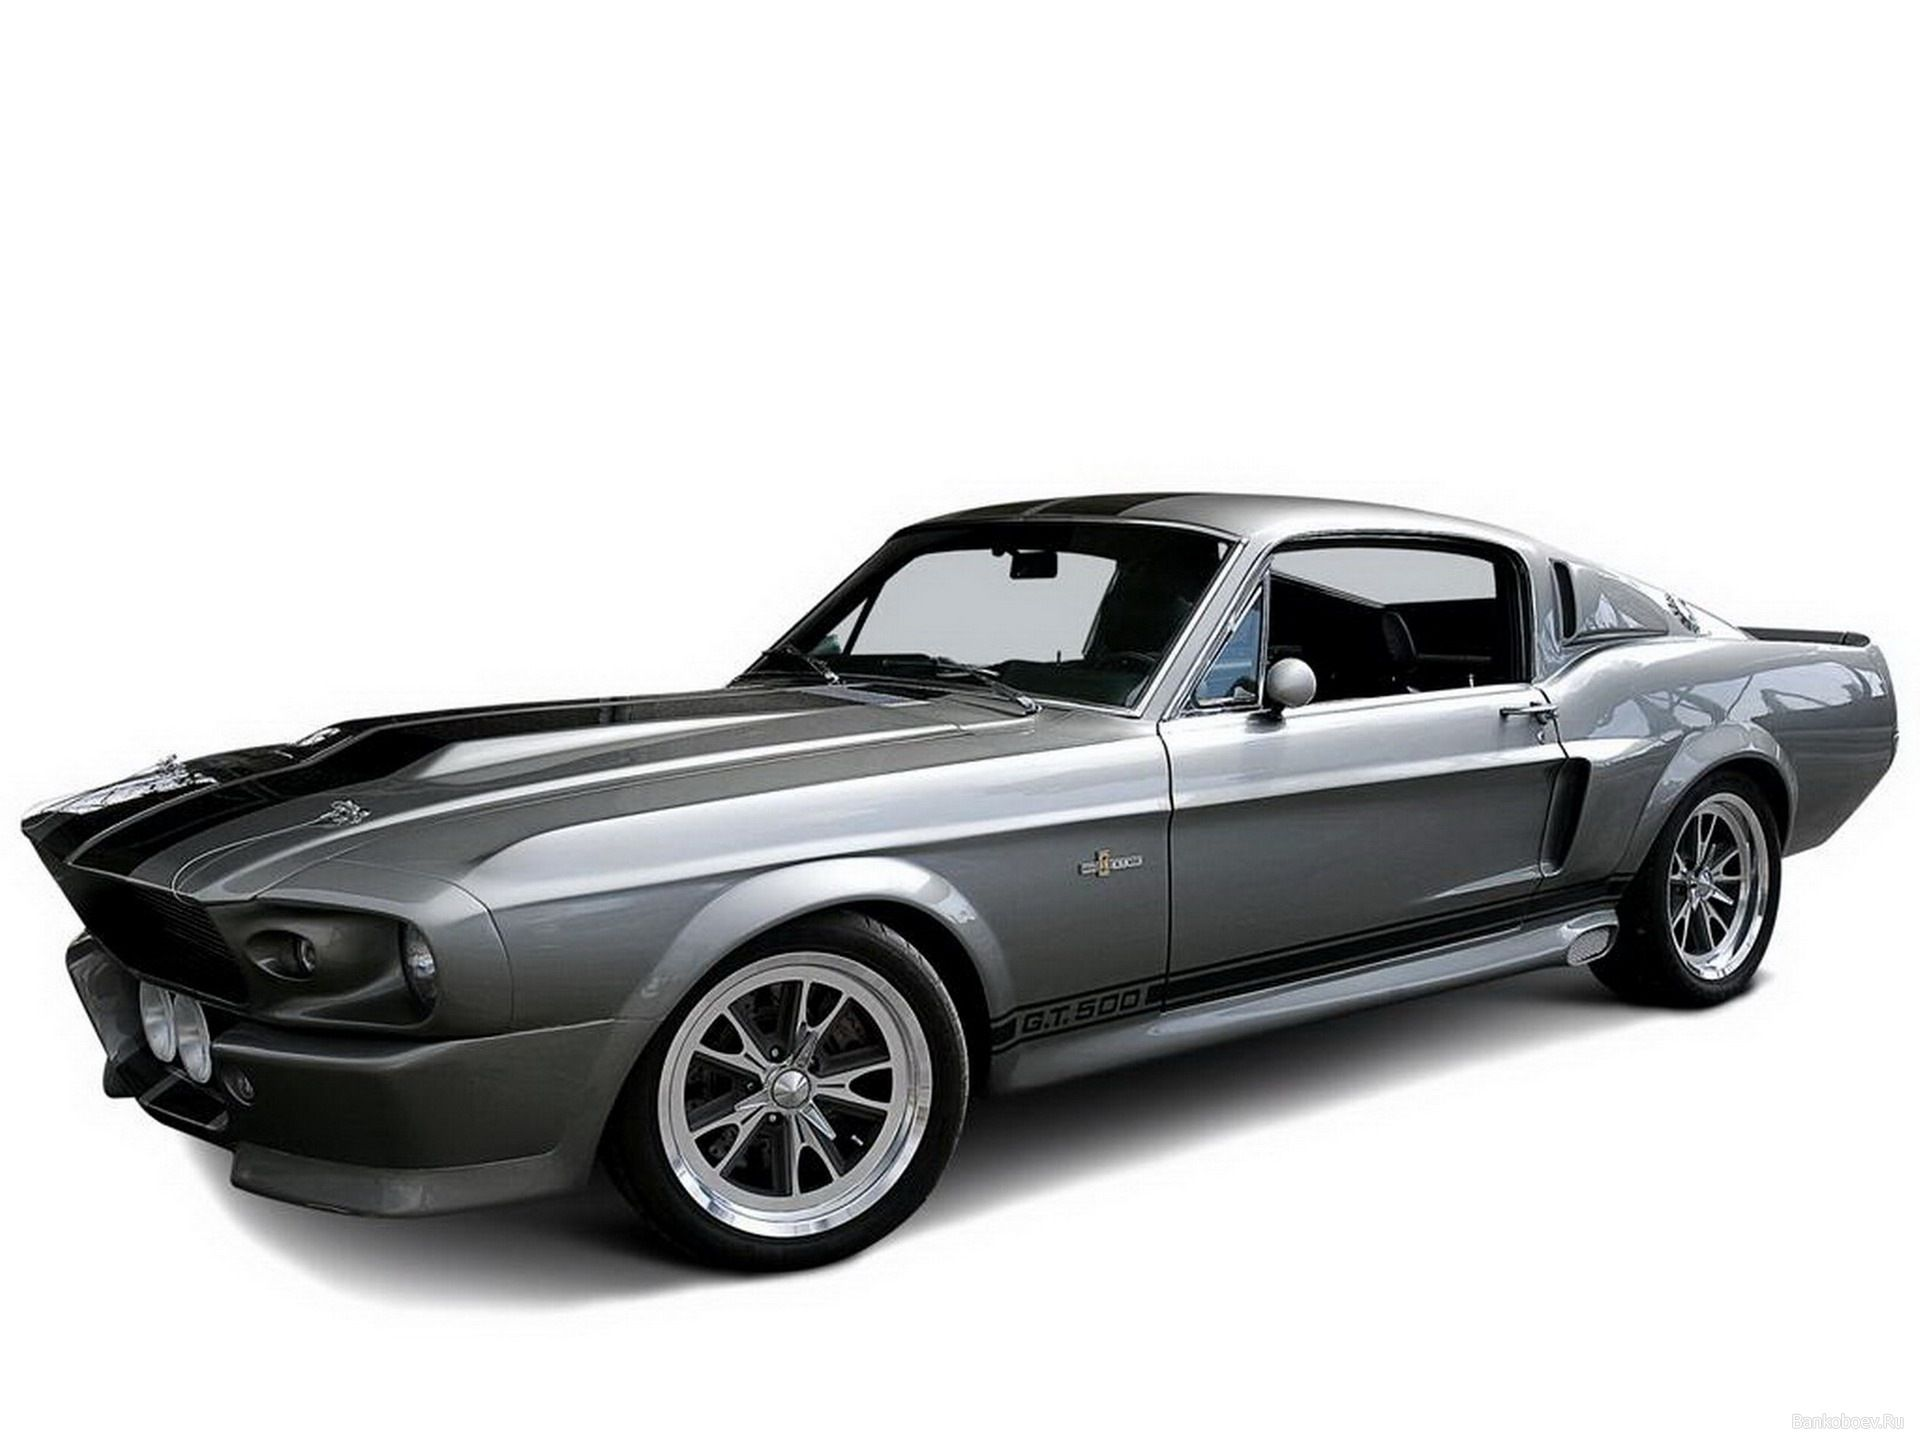 Ordinaire Ford Mustang Gt 500 1967 (1920×1440)